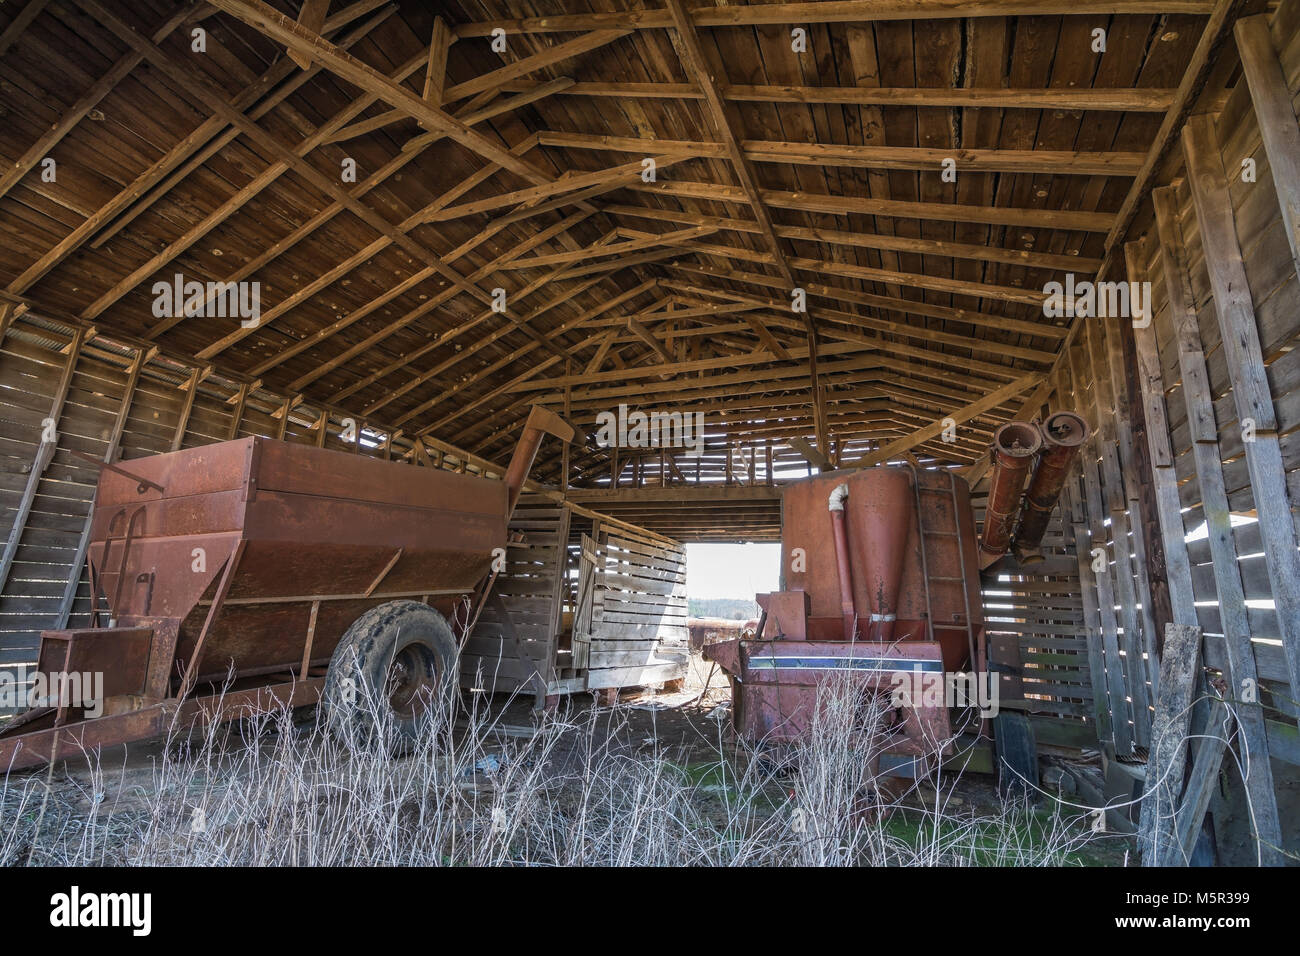 Inside of an old, open air barn. Stored inside is old agricultural equipment. - Stock Image